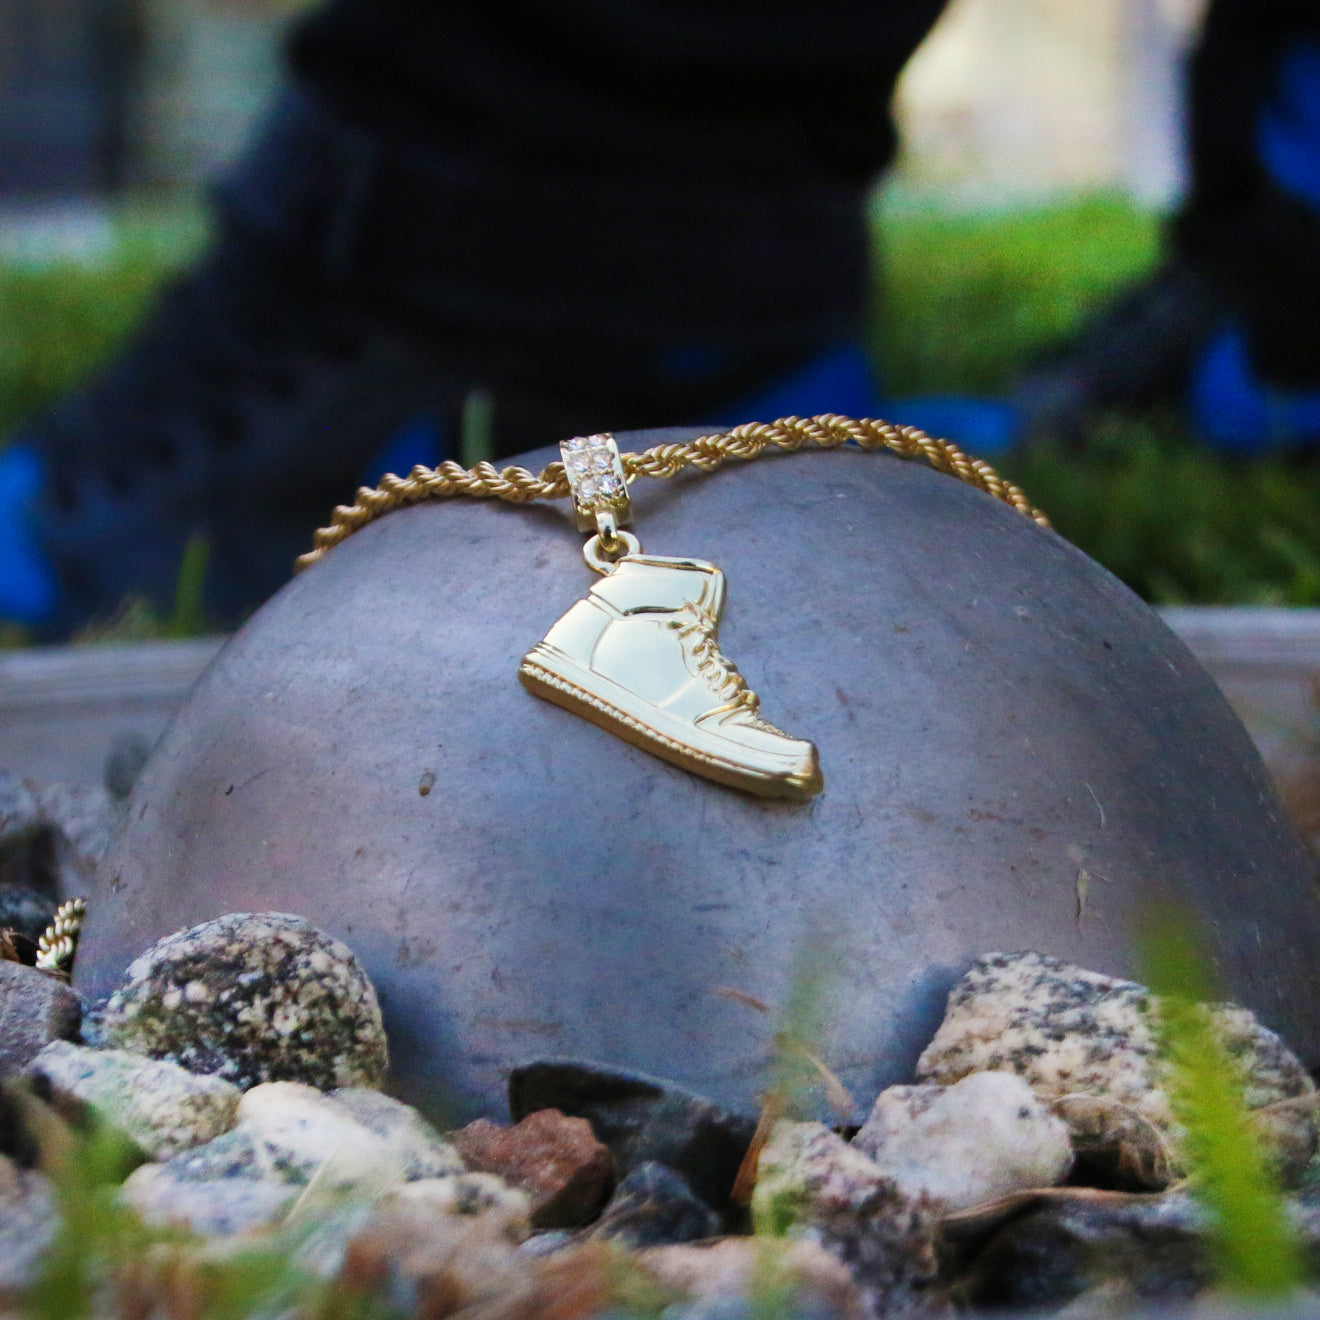 14K GOLD PLATED RETRO 1 PENDANT WITH GOLD ROPE CHAIN